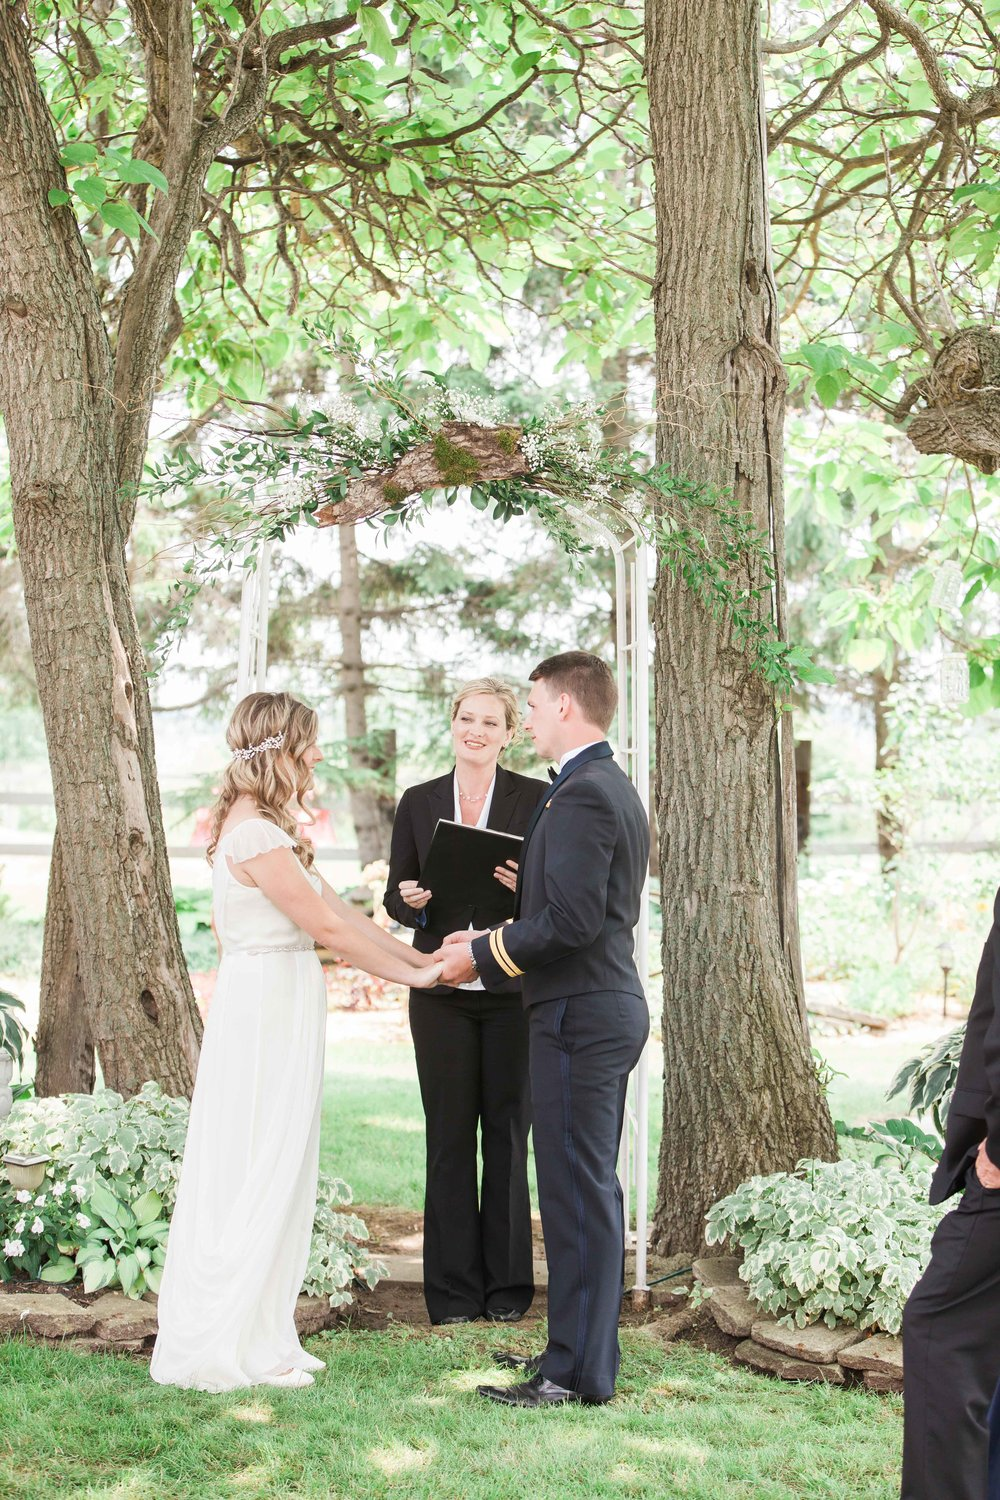 Bride and groom exchanging vows at outdoor wedding